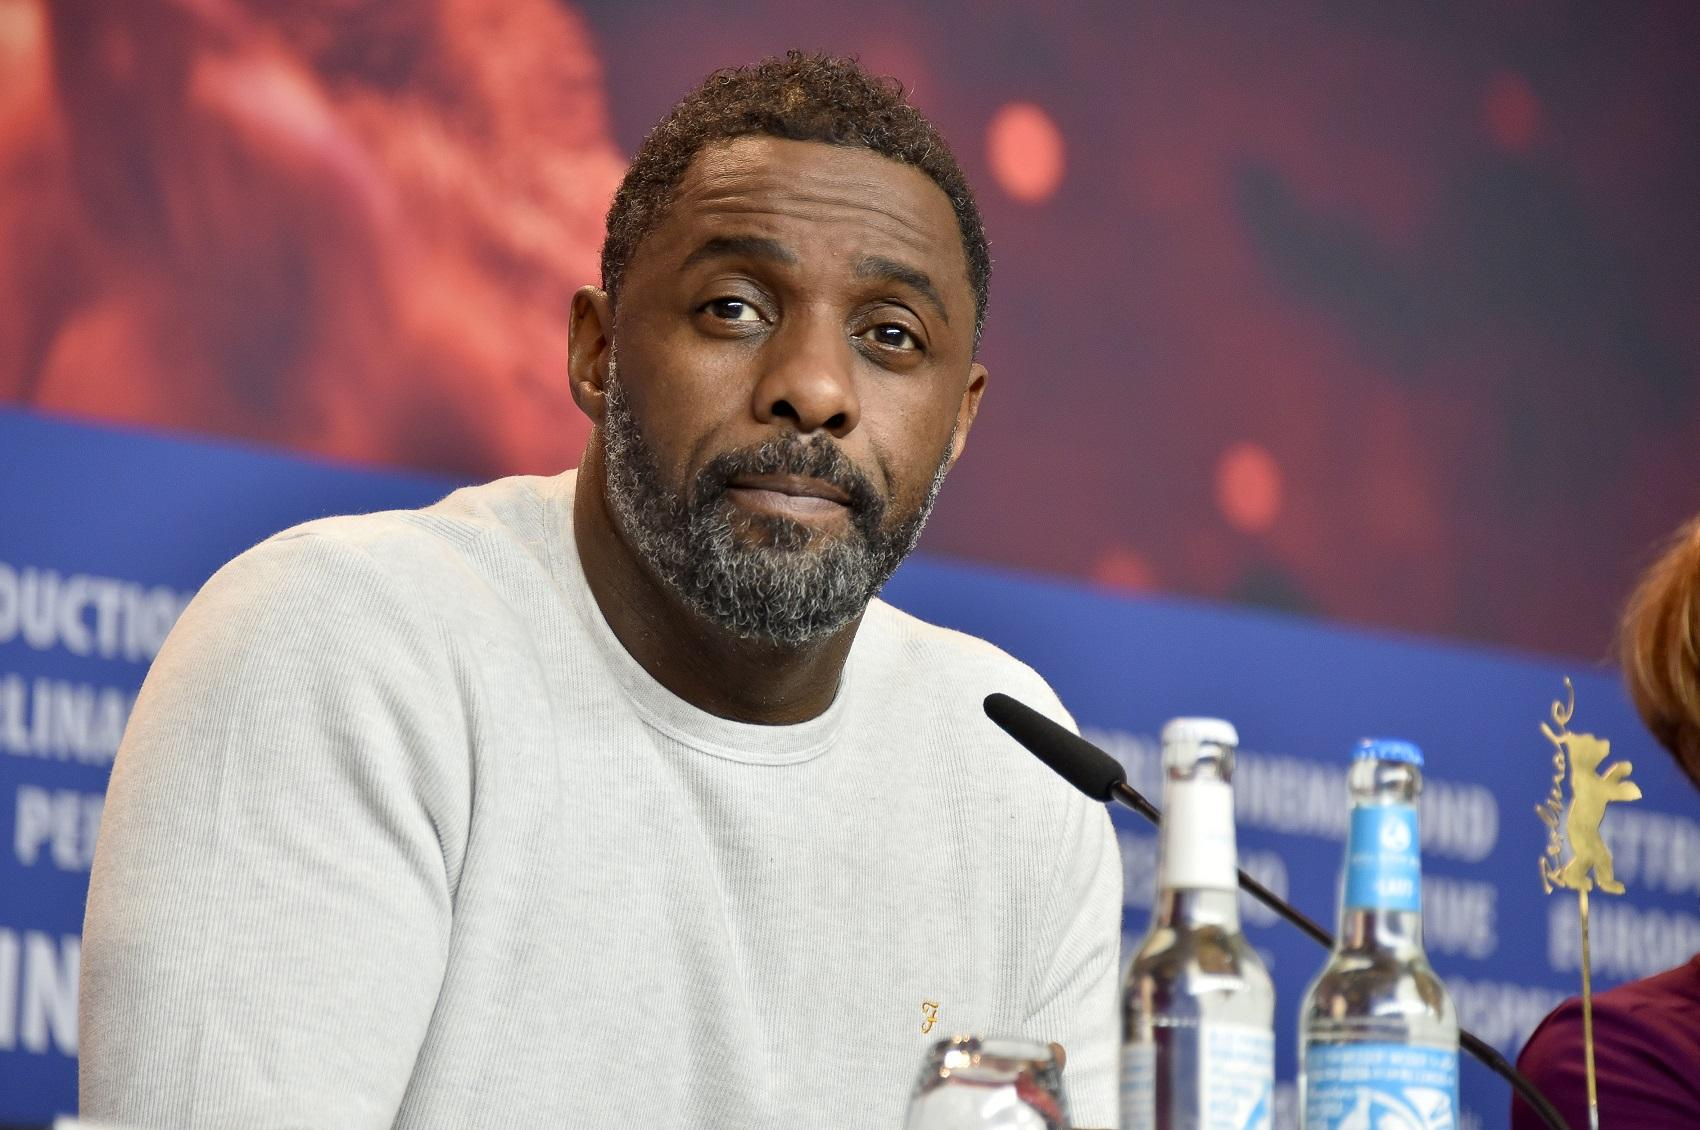 Idris Elba rejoint le spin-off — Fast and Furious